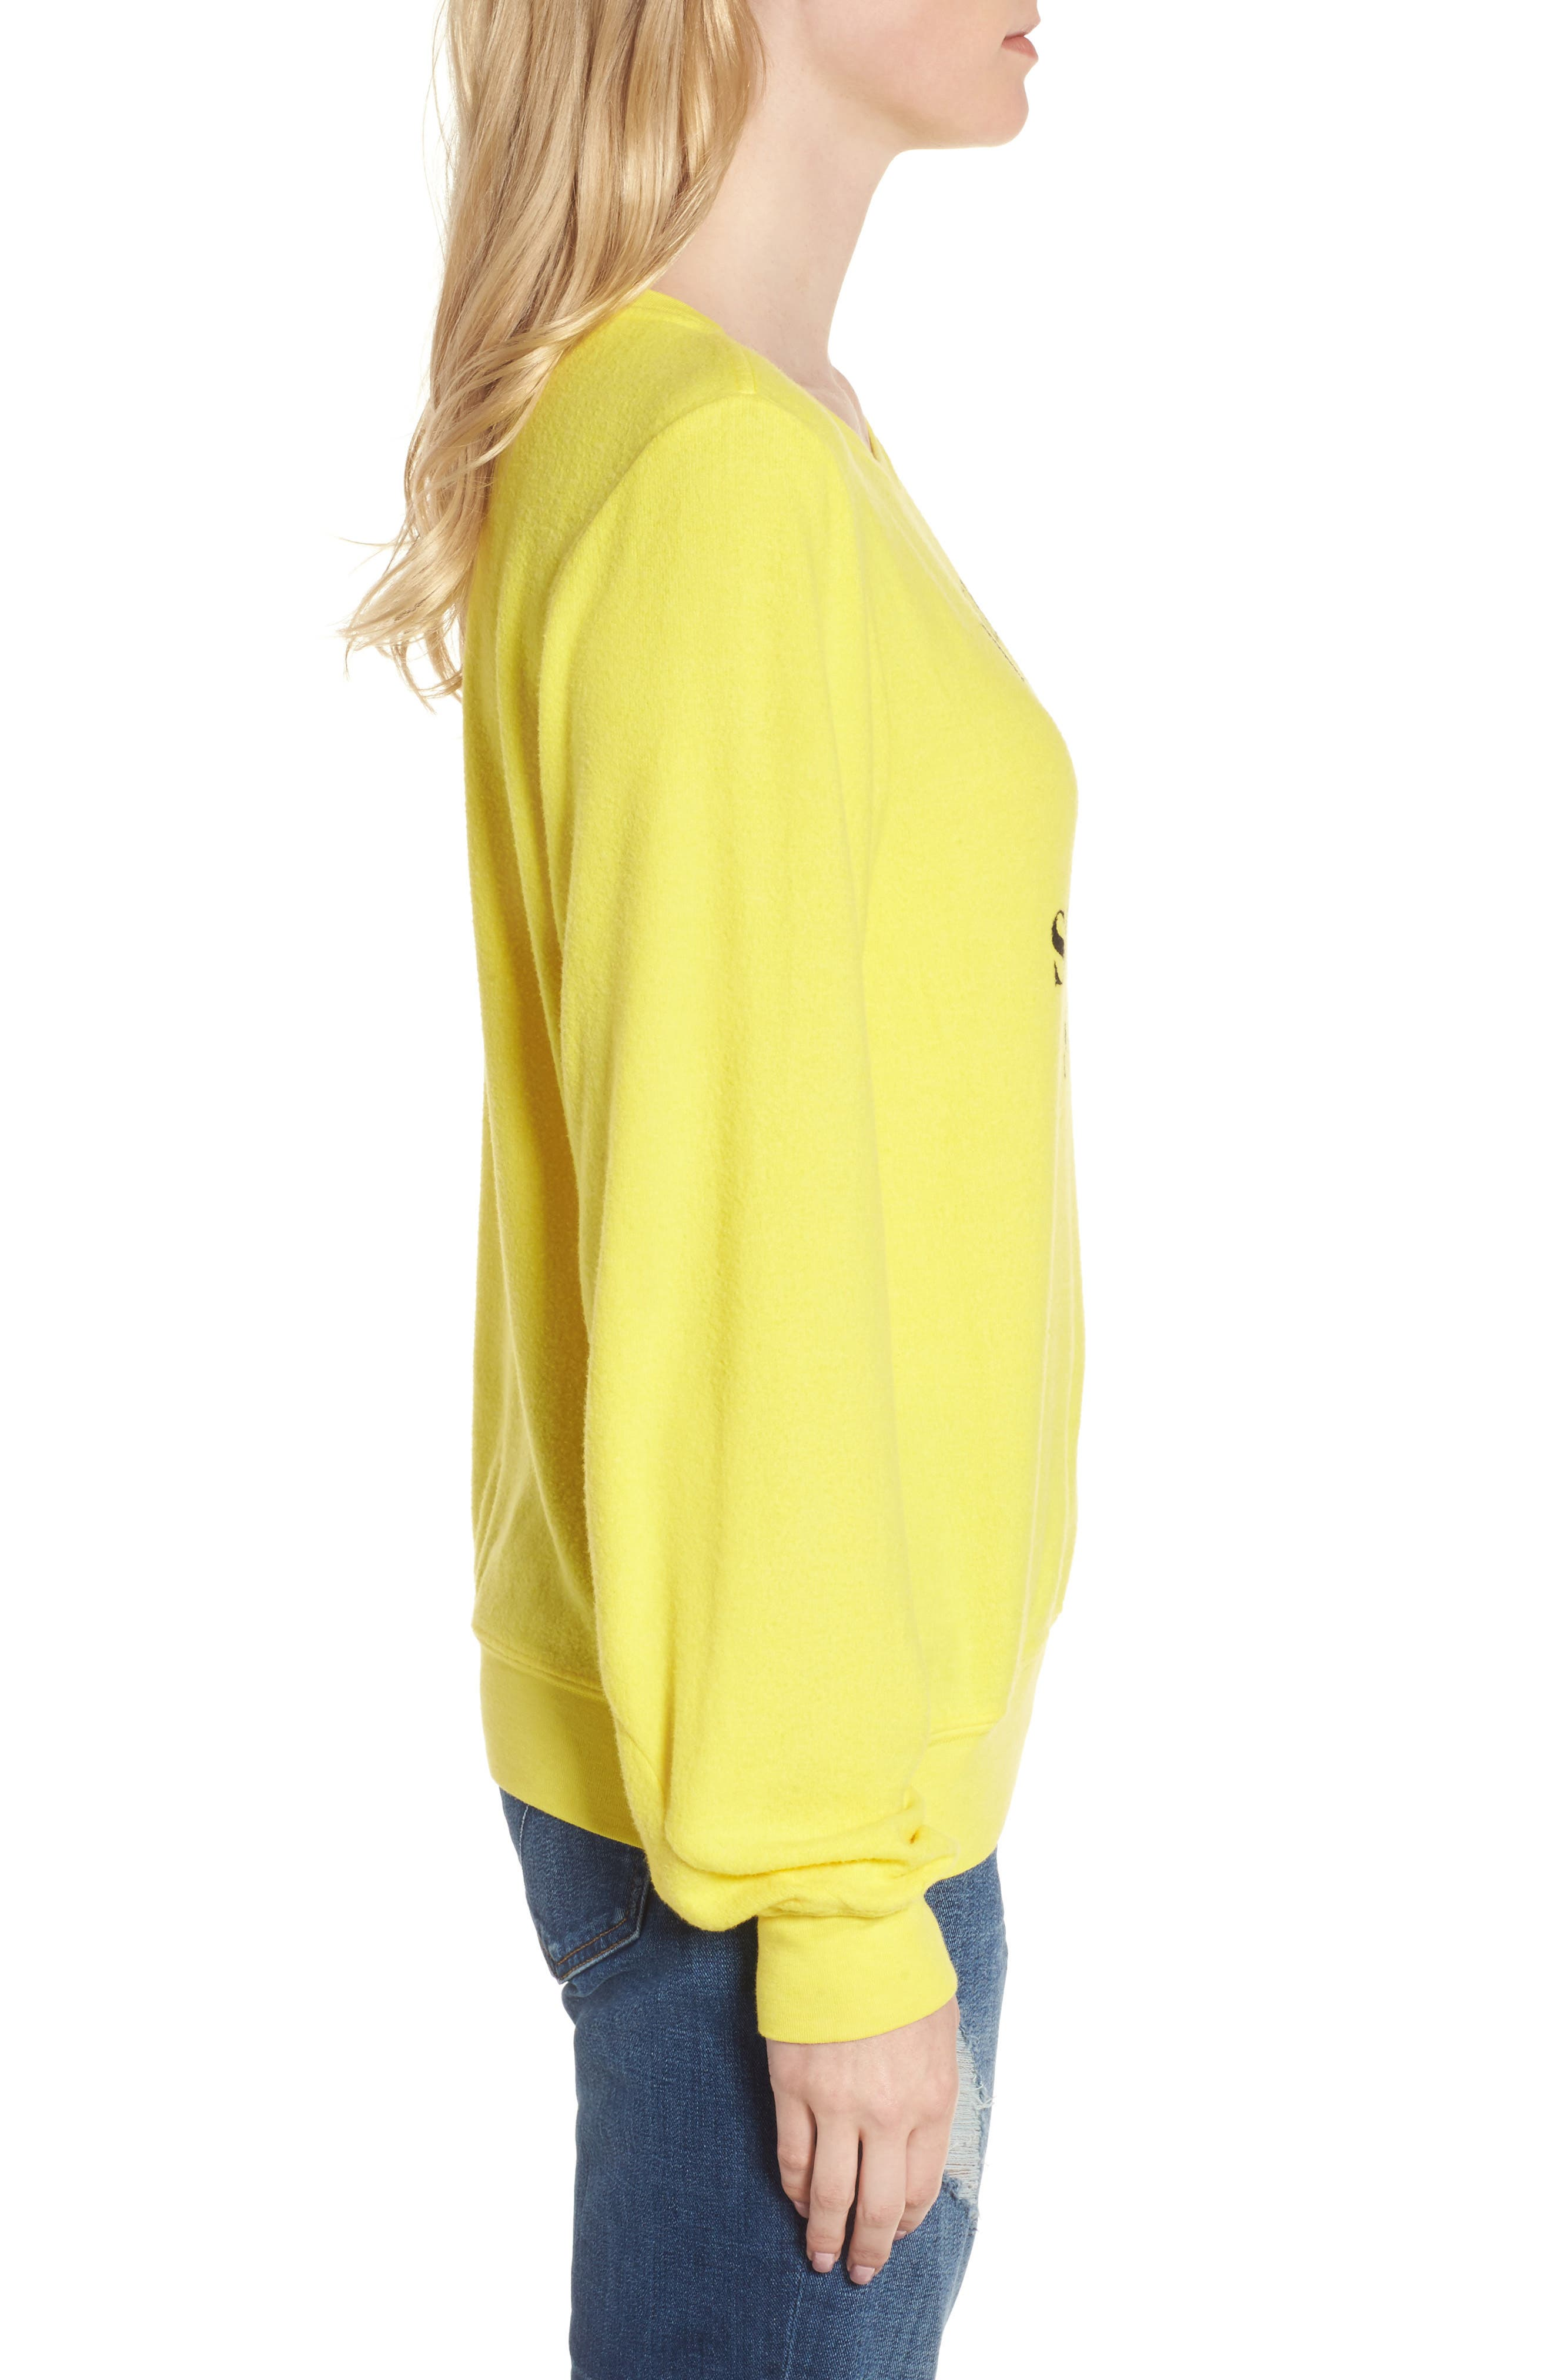 Alternate Image 3  - Wildfox 'Somewhere Sunny' Sweatshirt